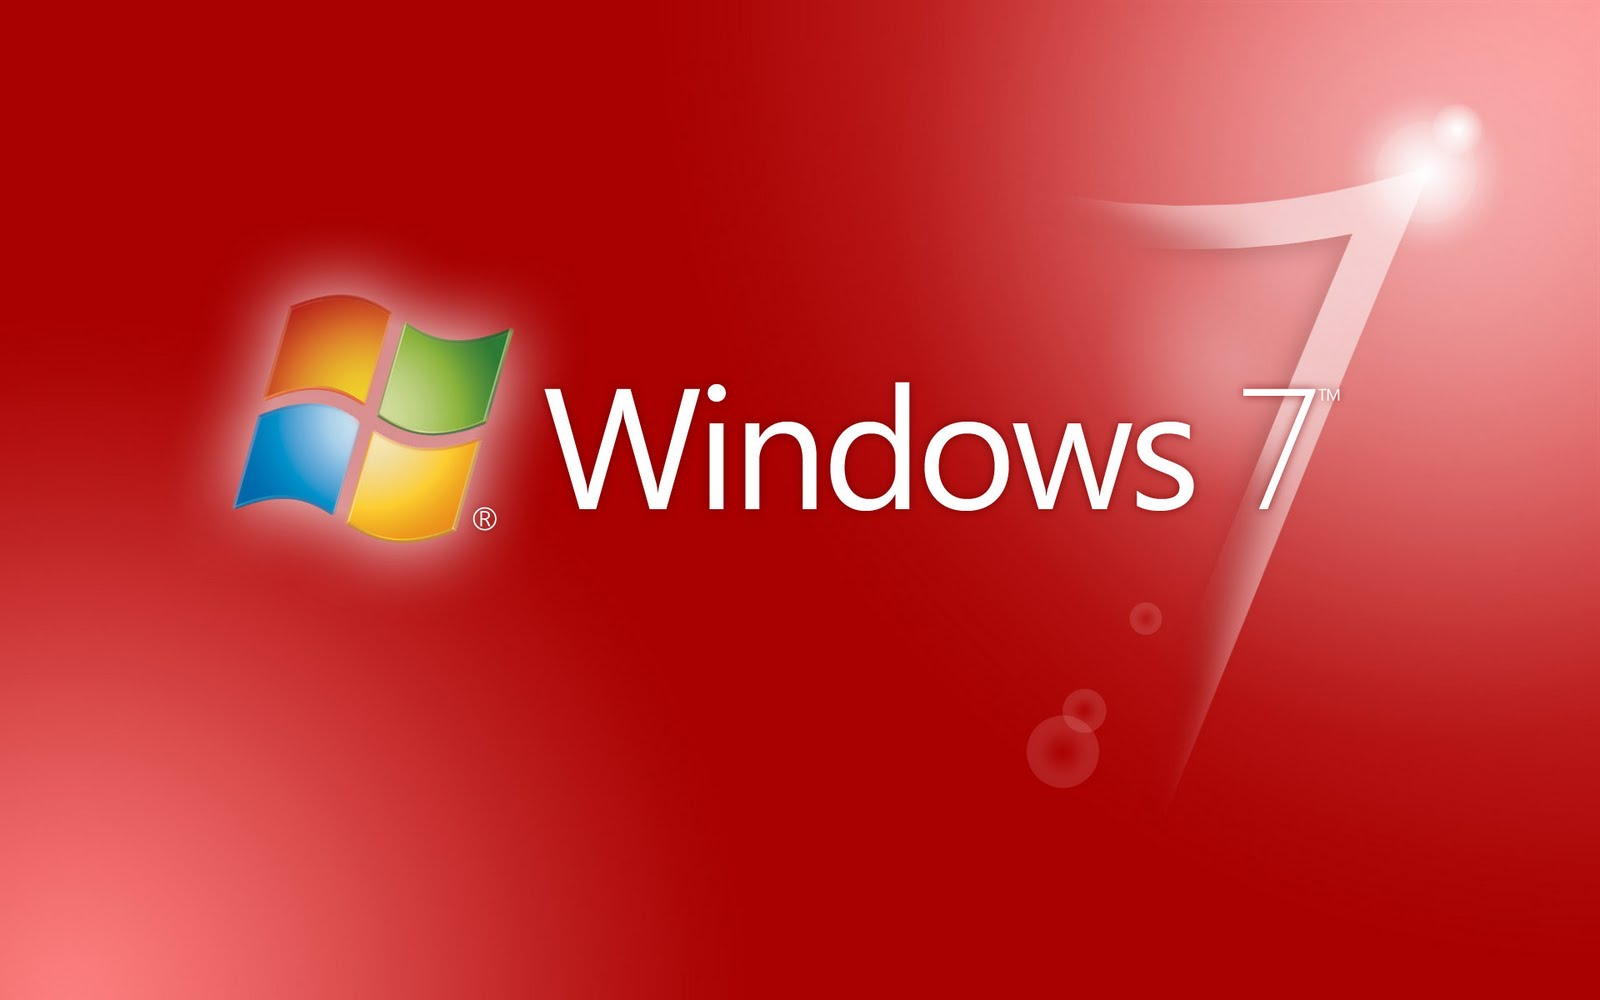 wallpapers: animated wallpapers for windows 7